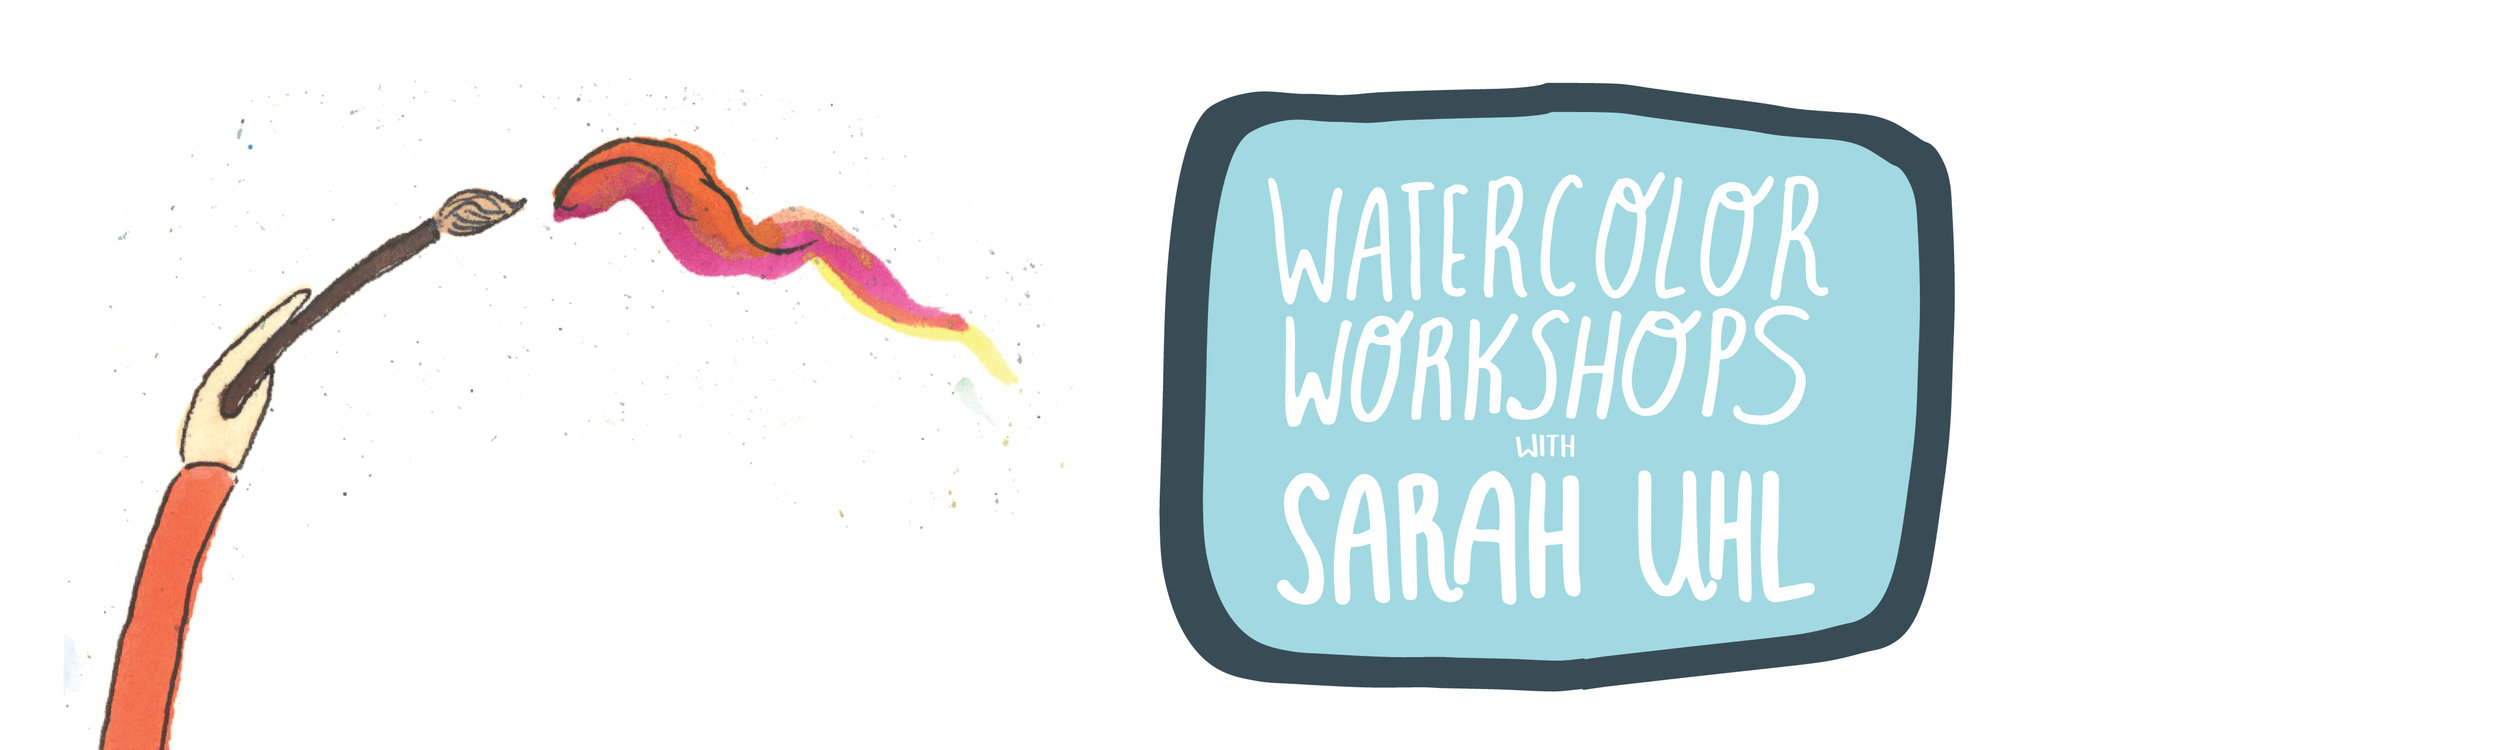 watercolor workshops flyer_workshop website banner.jpg